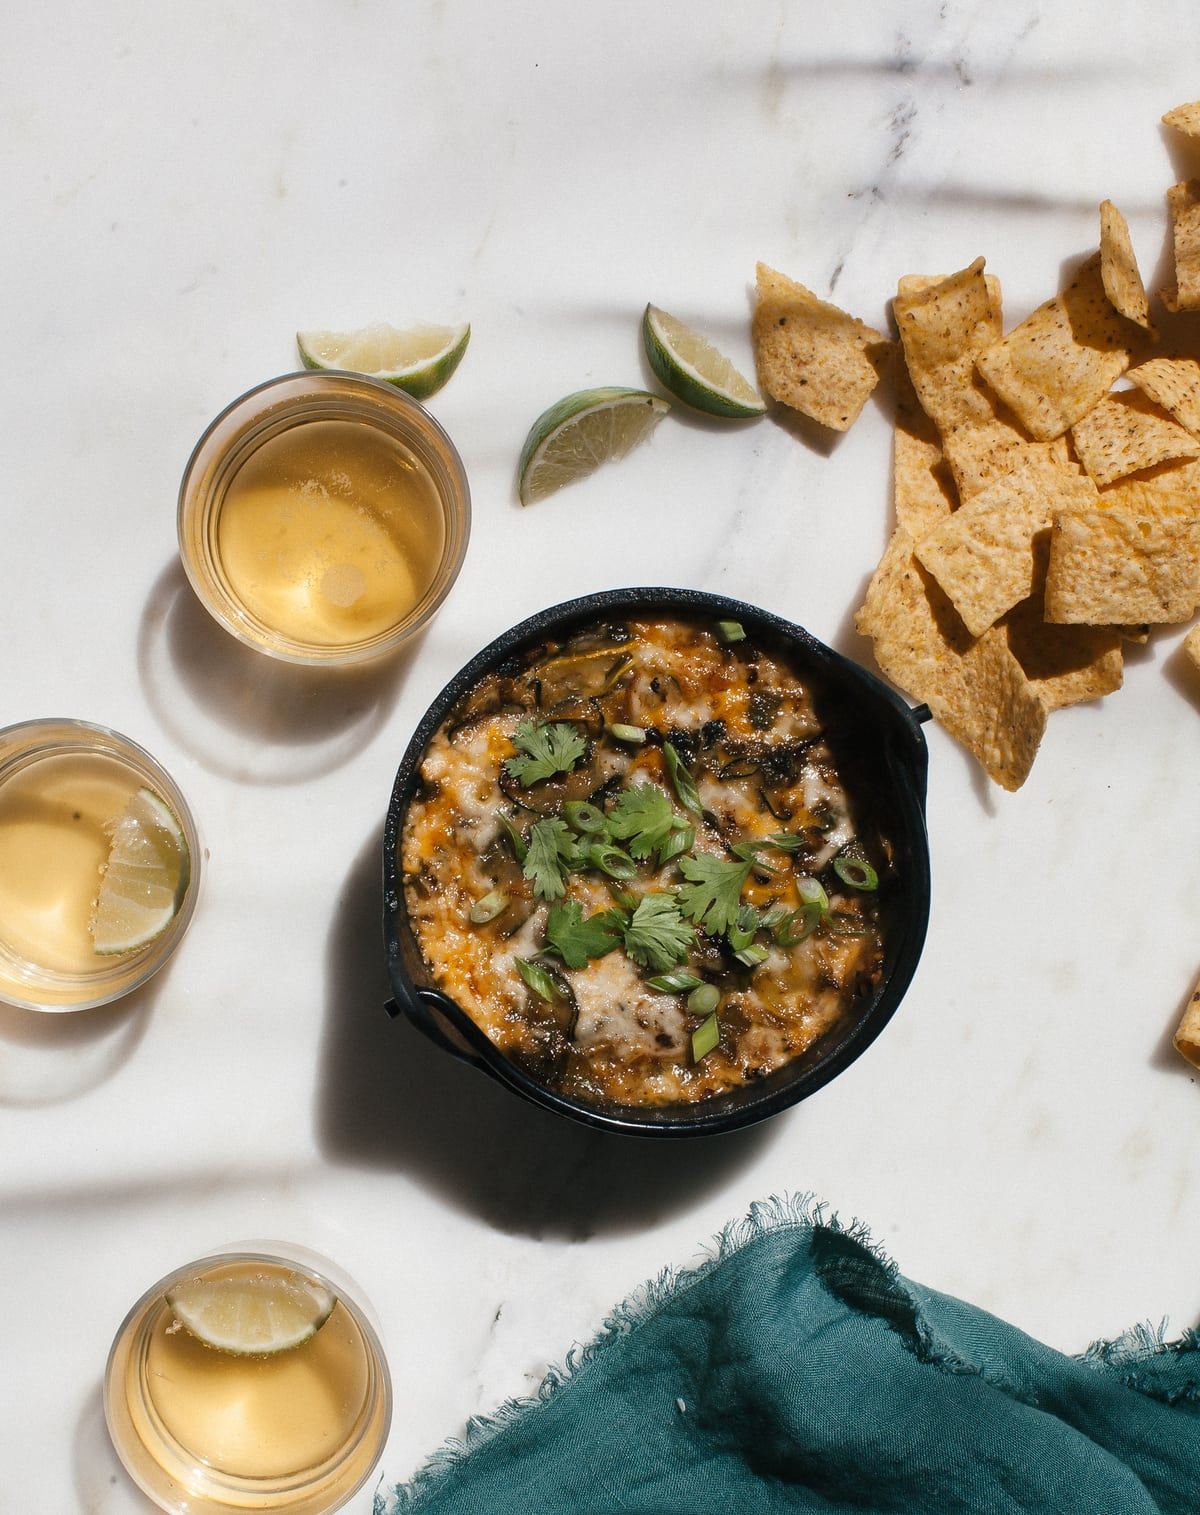 Hatch Chile Summer Squash Queso Fundido